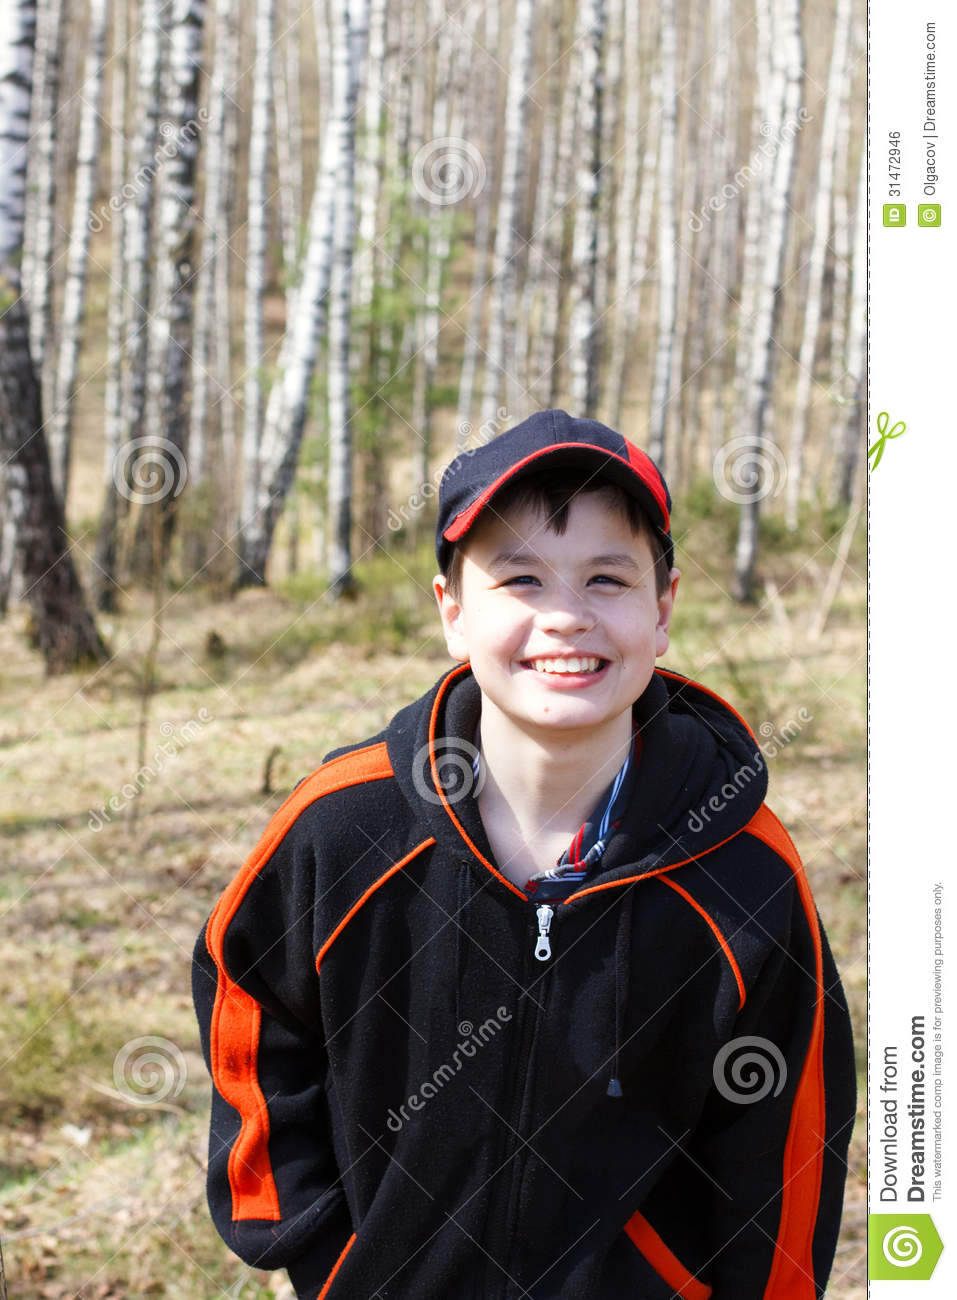 4 Year Boy Bedroom Decorating Ideas: Close-up Portrait Of Laughing Boy Royalty Free Stock Image